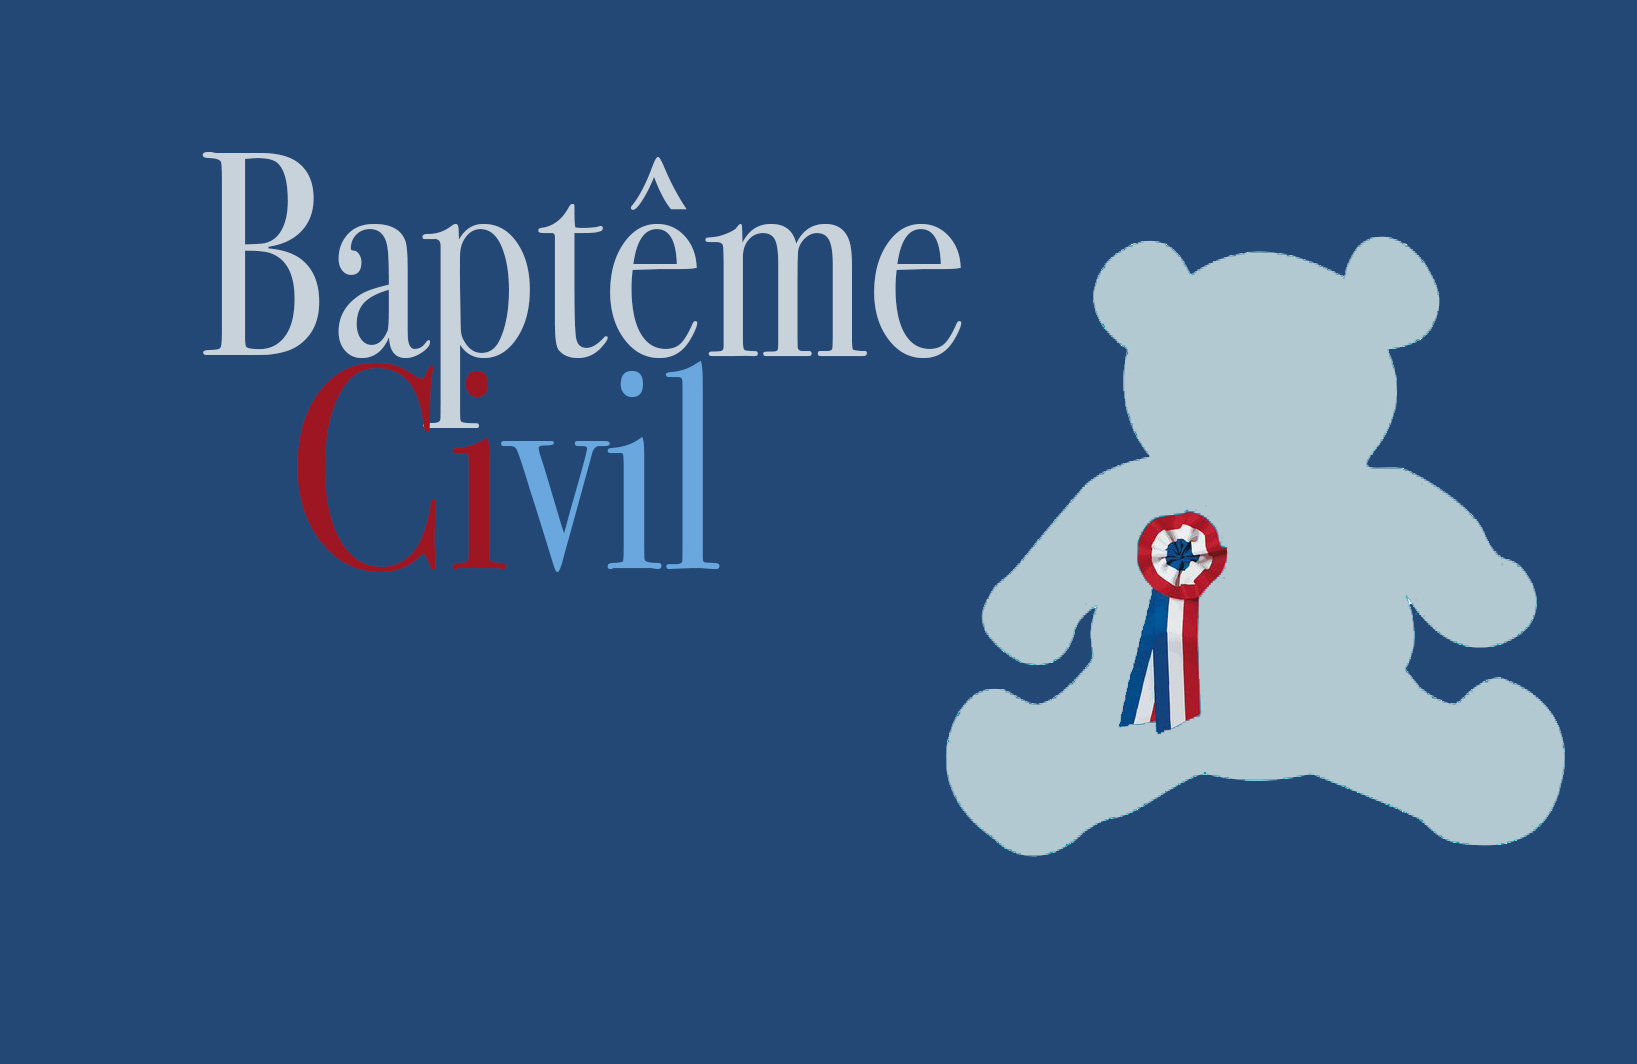 BAPTEME-CIVIL.jpg